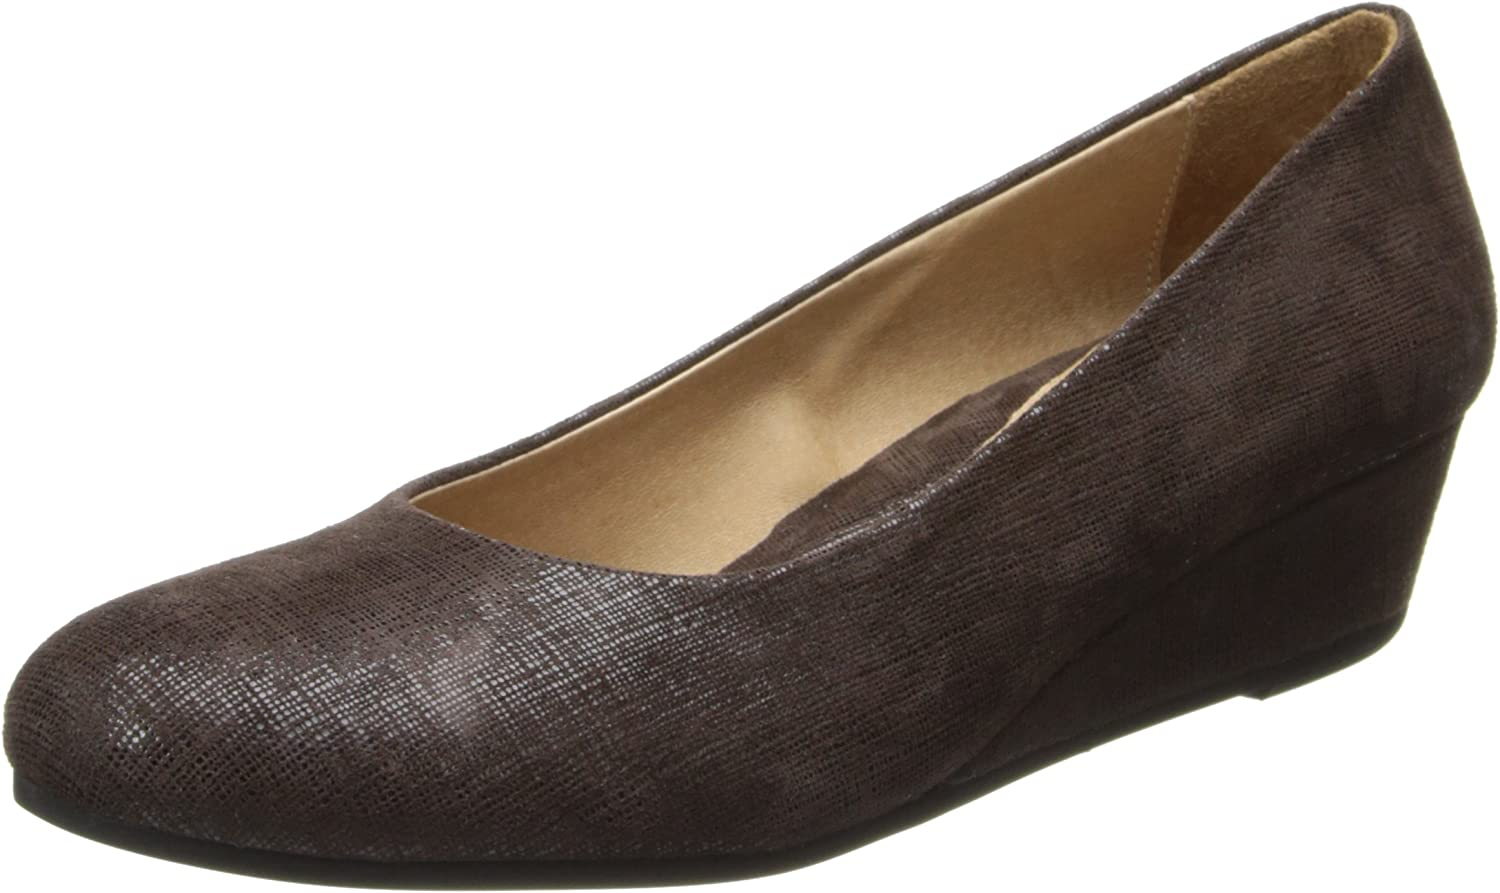 French Sole FS NY Women's Gumdrop Wedge Pump